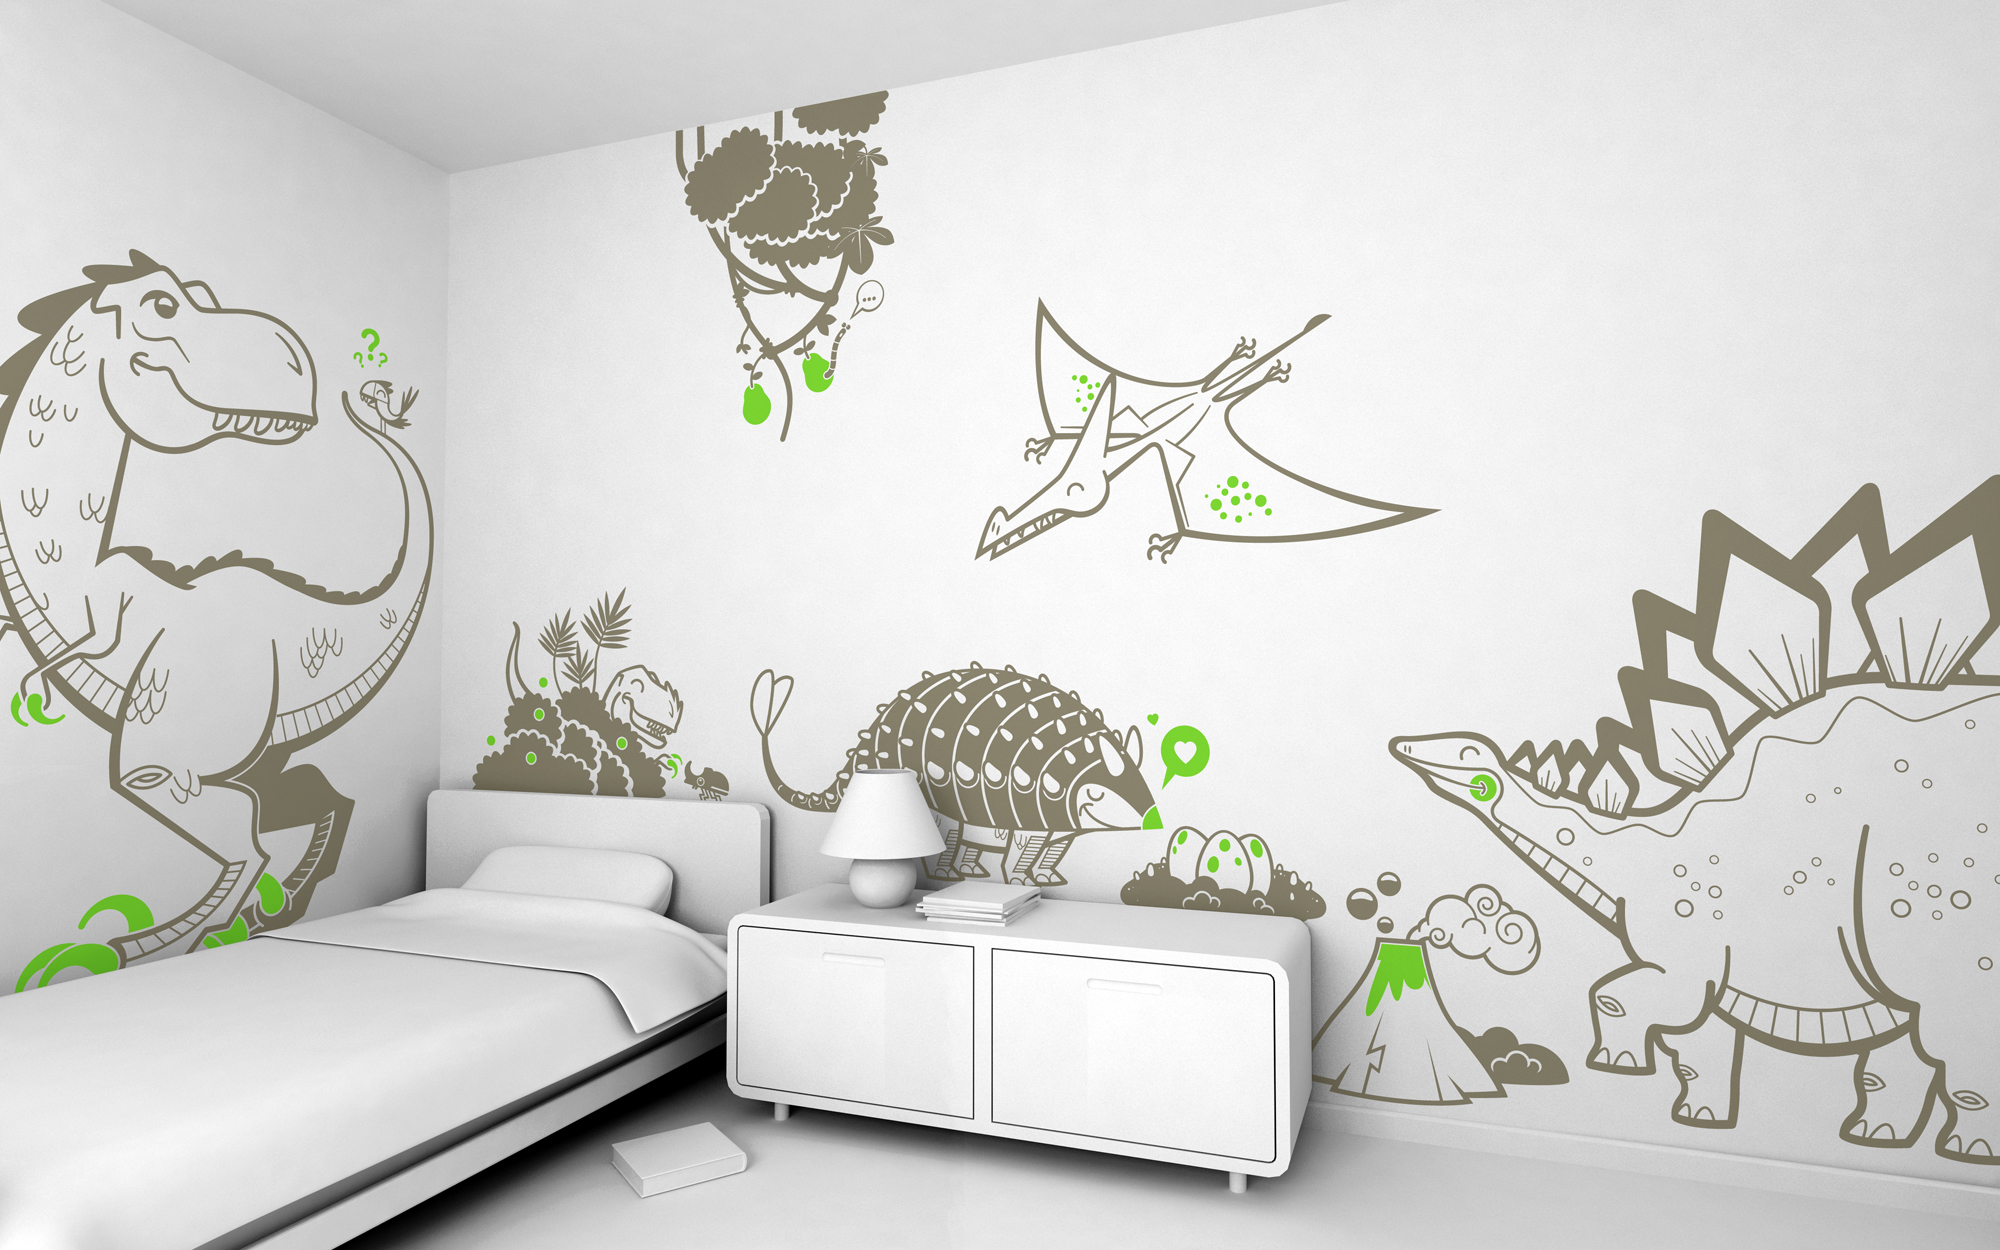 Giant kids wall decals by e glue studio at for Decoracion con vinilos